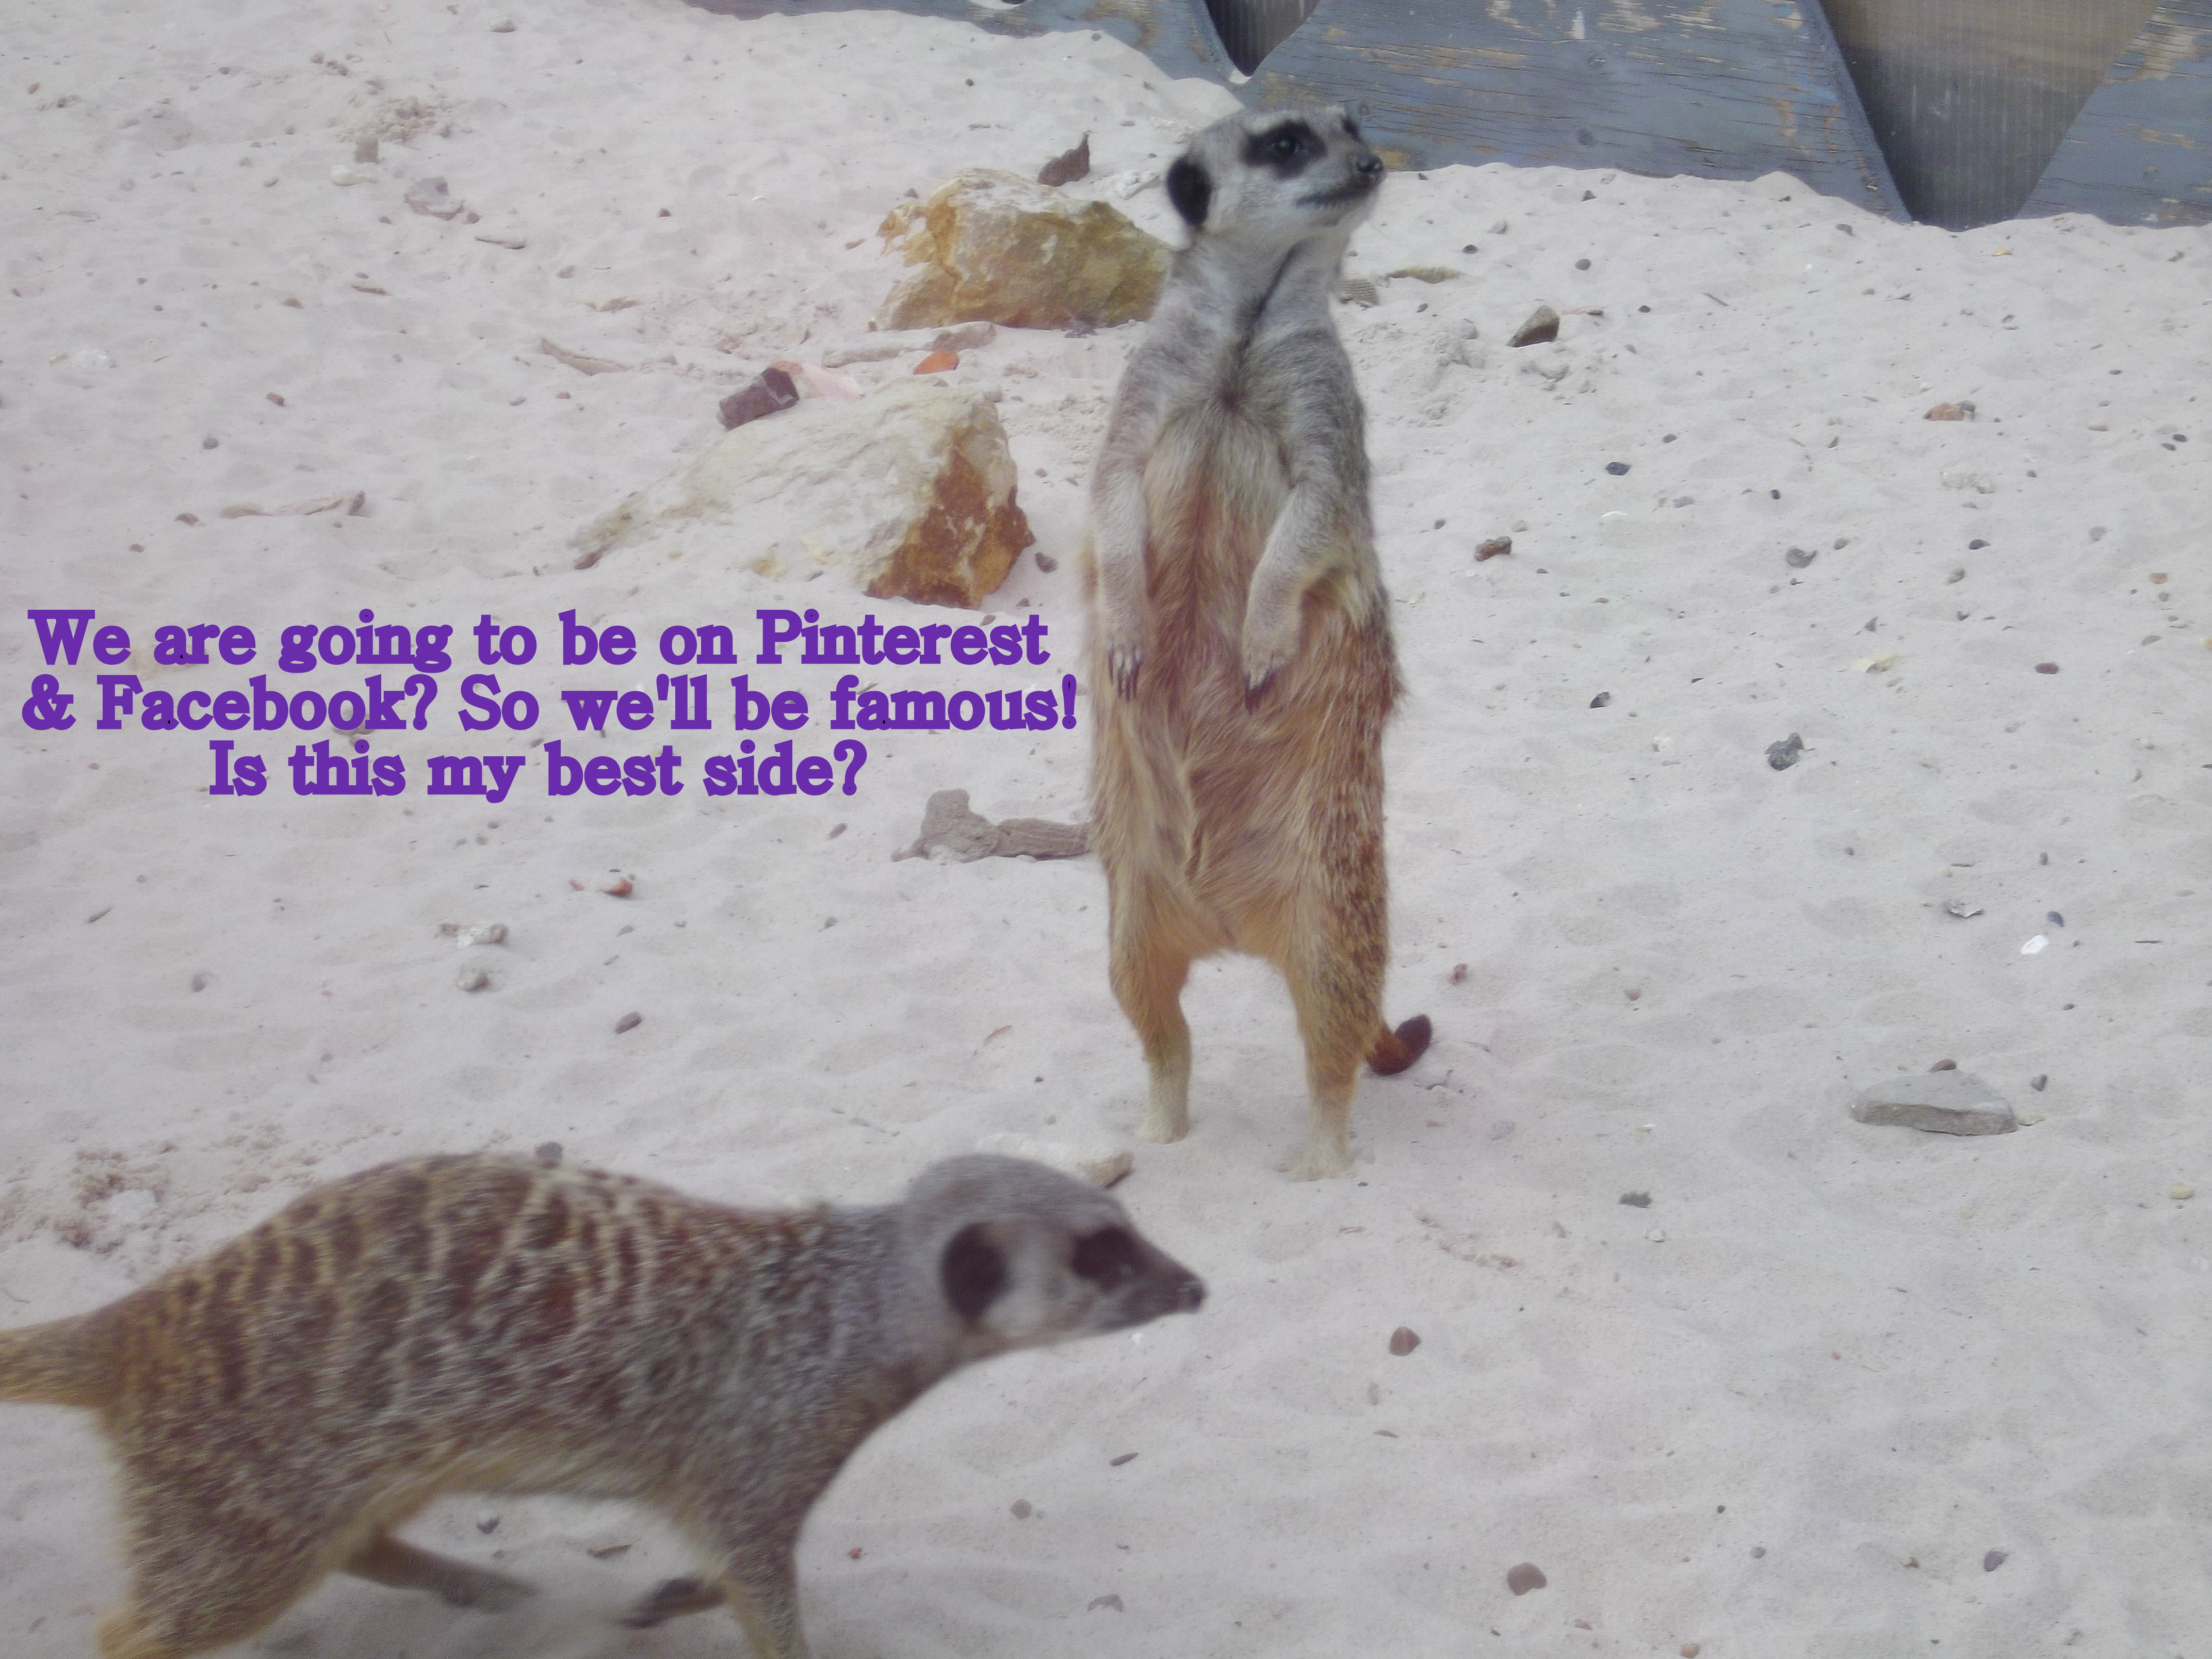 Meercats - using images in blog posts